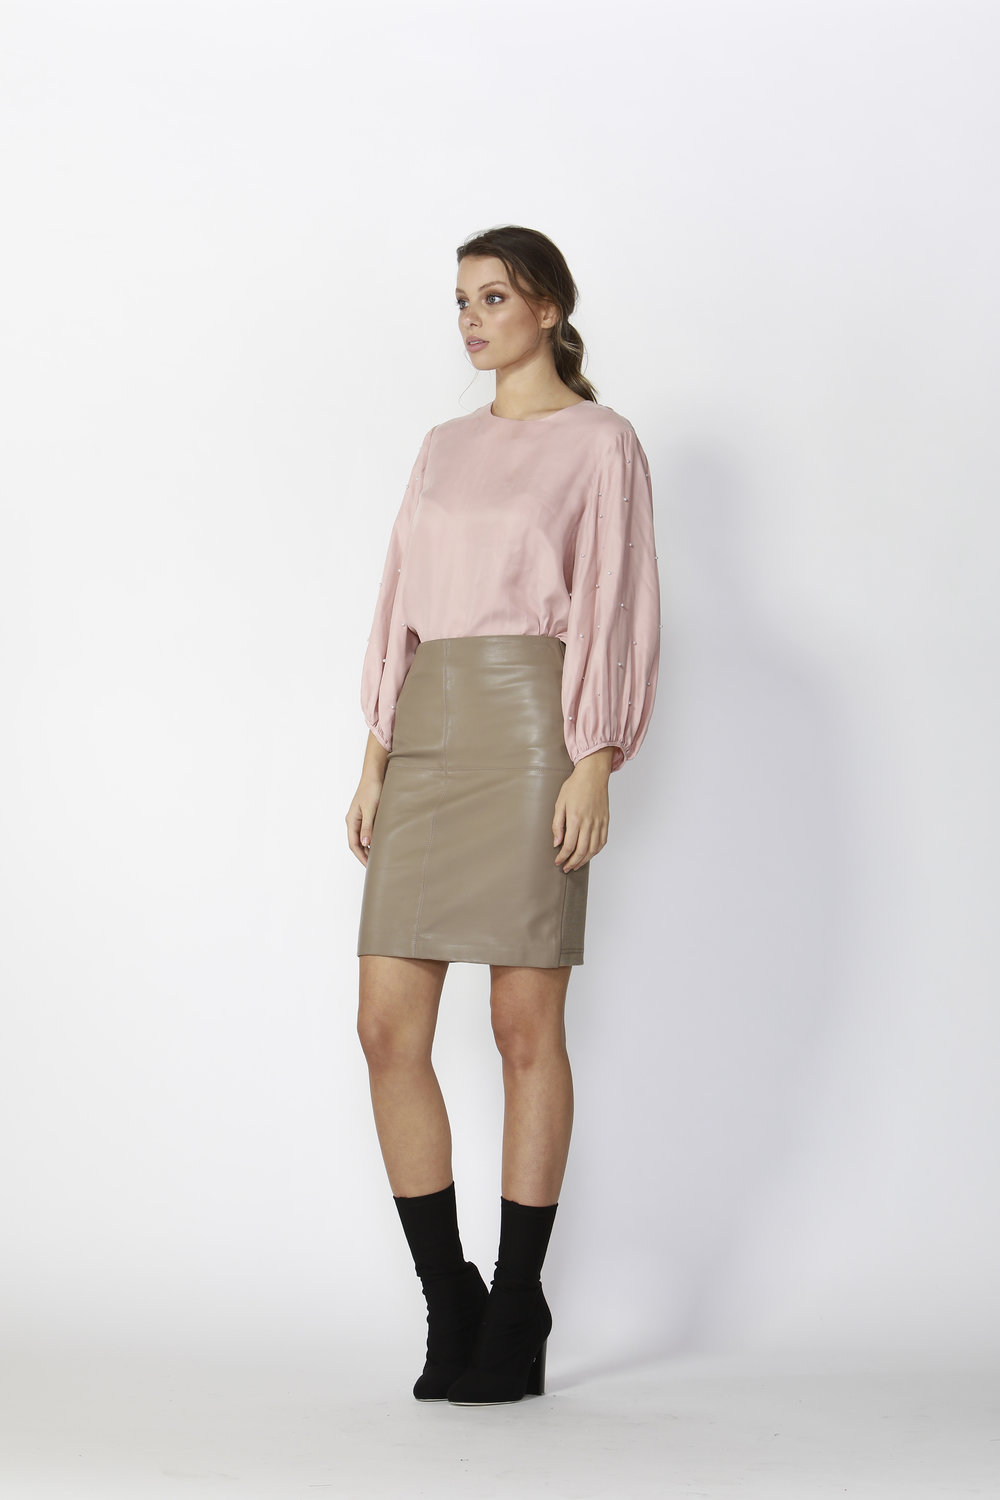 Greenwhich Balloon Sleeve Top (Pink)  - $165